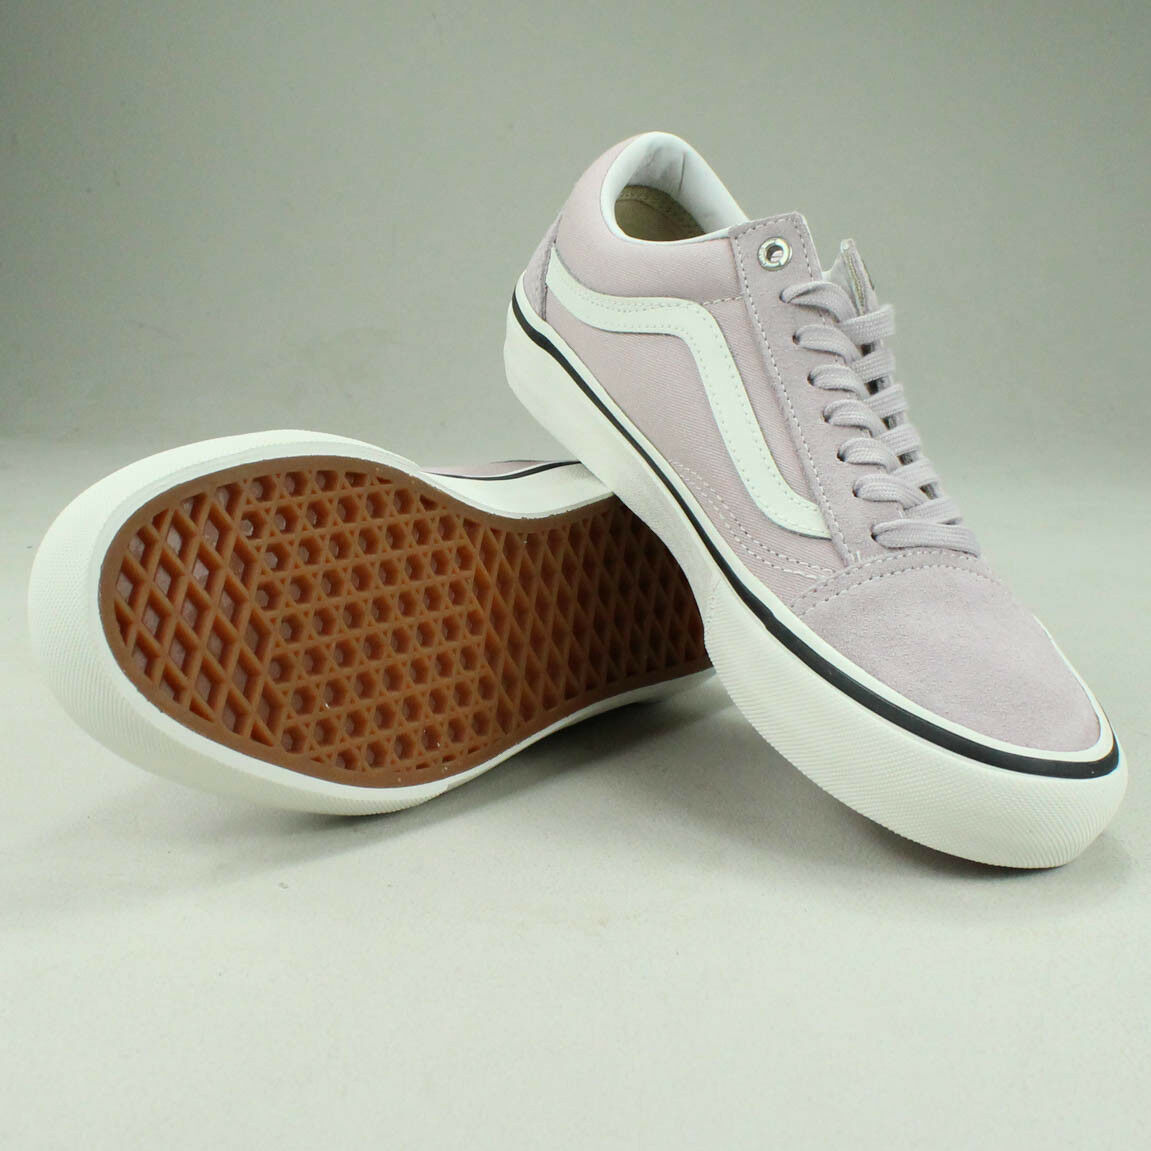 Vans Old Skool Pro Trainers shoes shoes shoes in purple in UK Sizes 4,5,6,7,8, f59f59